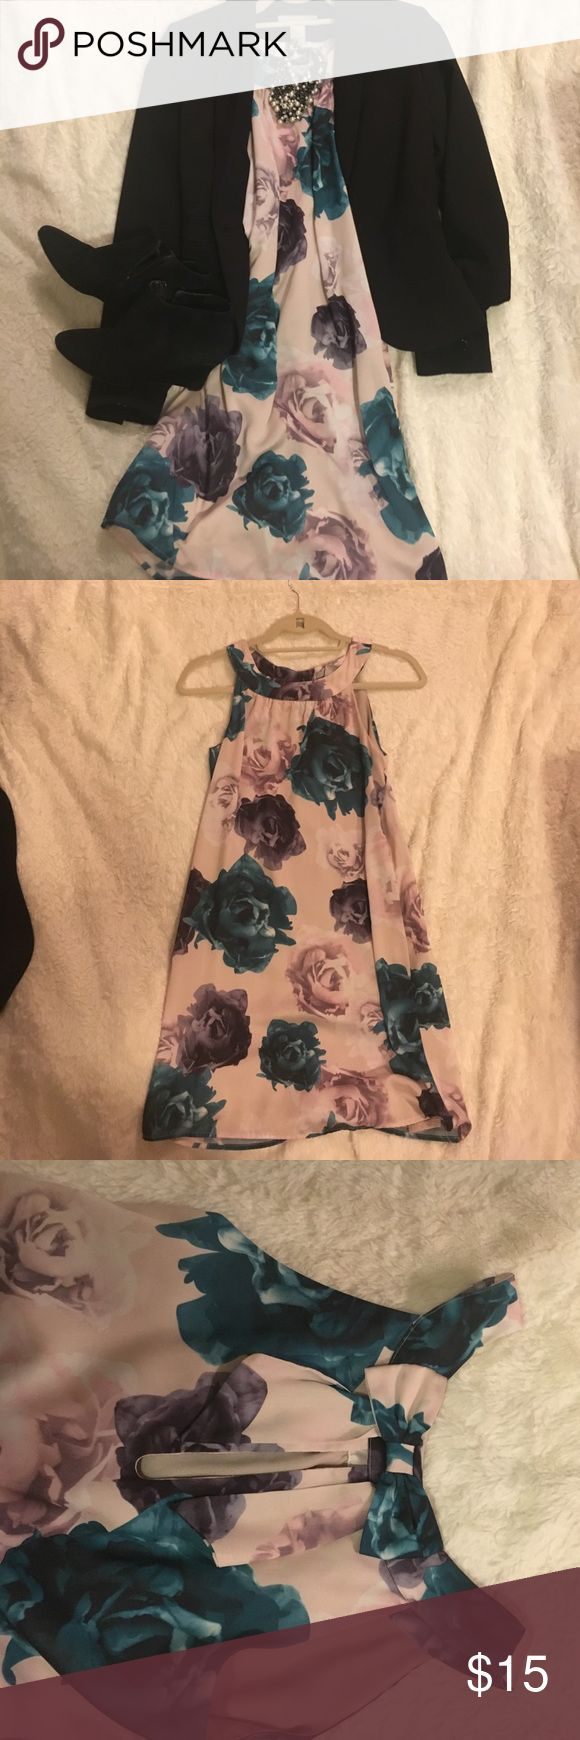 Floral Silky Dress Gorgeous silky H&M dress with super cute keyhole and bow in the back neck area. Perfect for weddings, events, even the office! Size 2. H&M Dresses Strapless